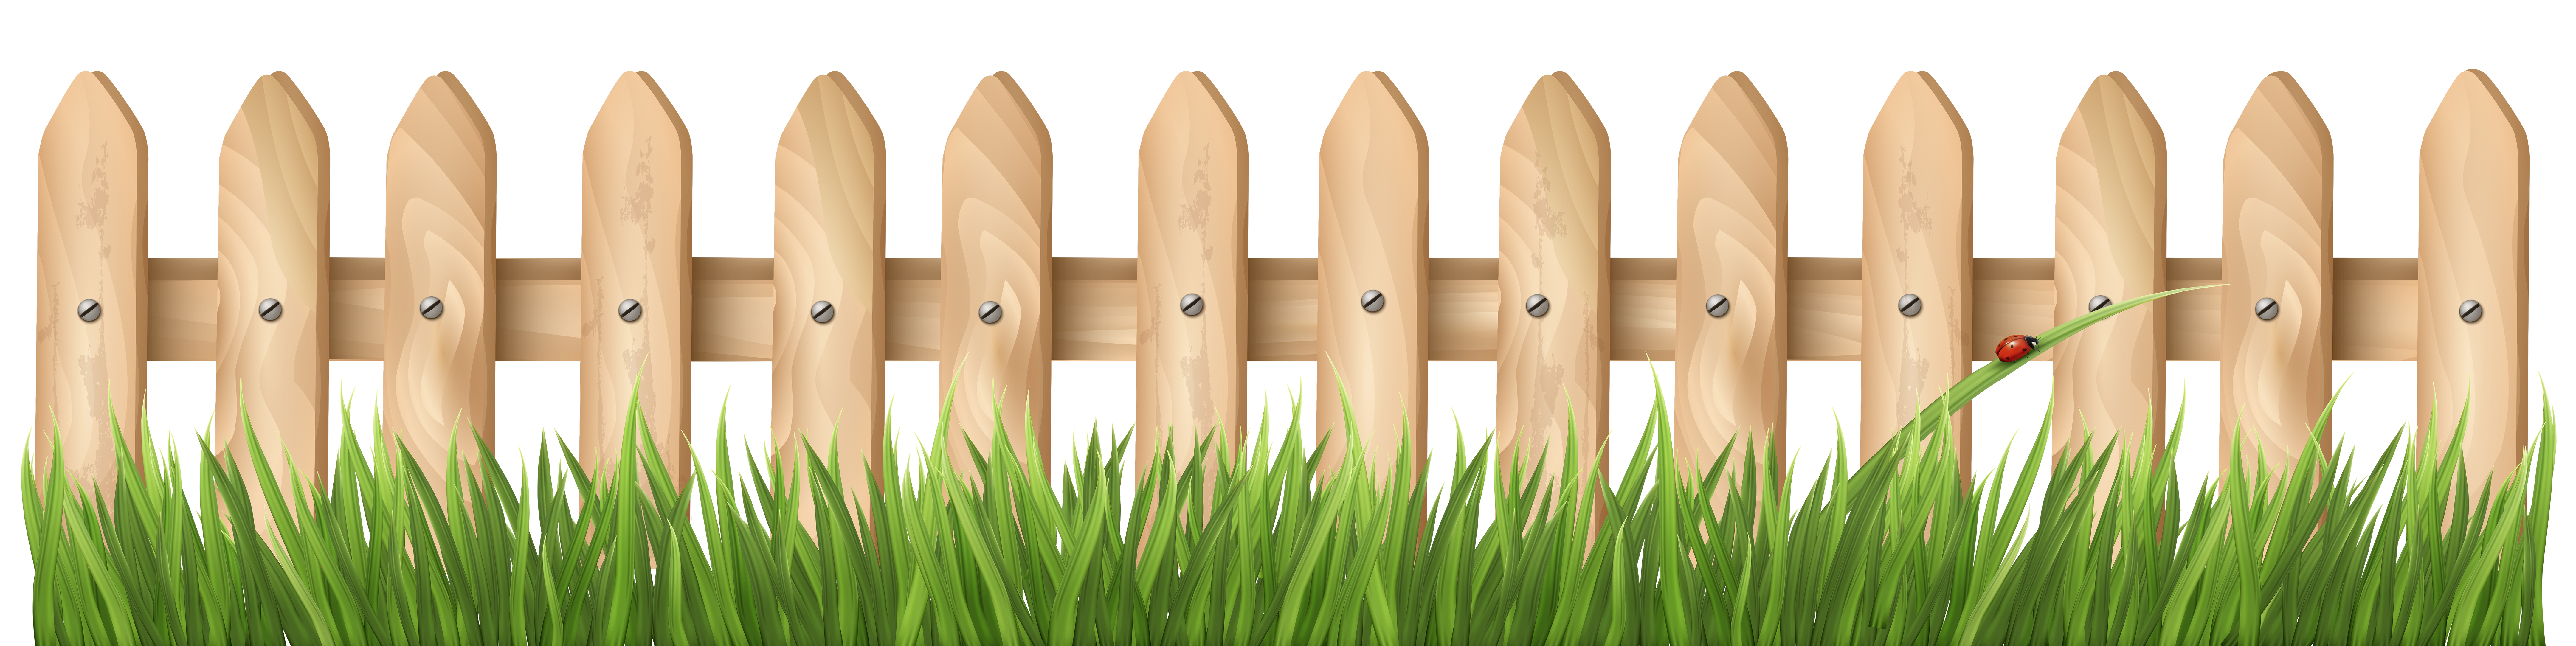 Fence clipart #13